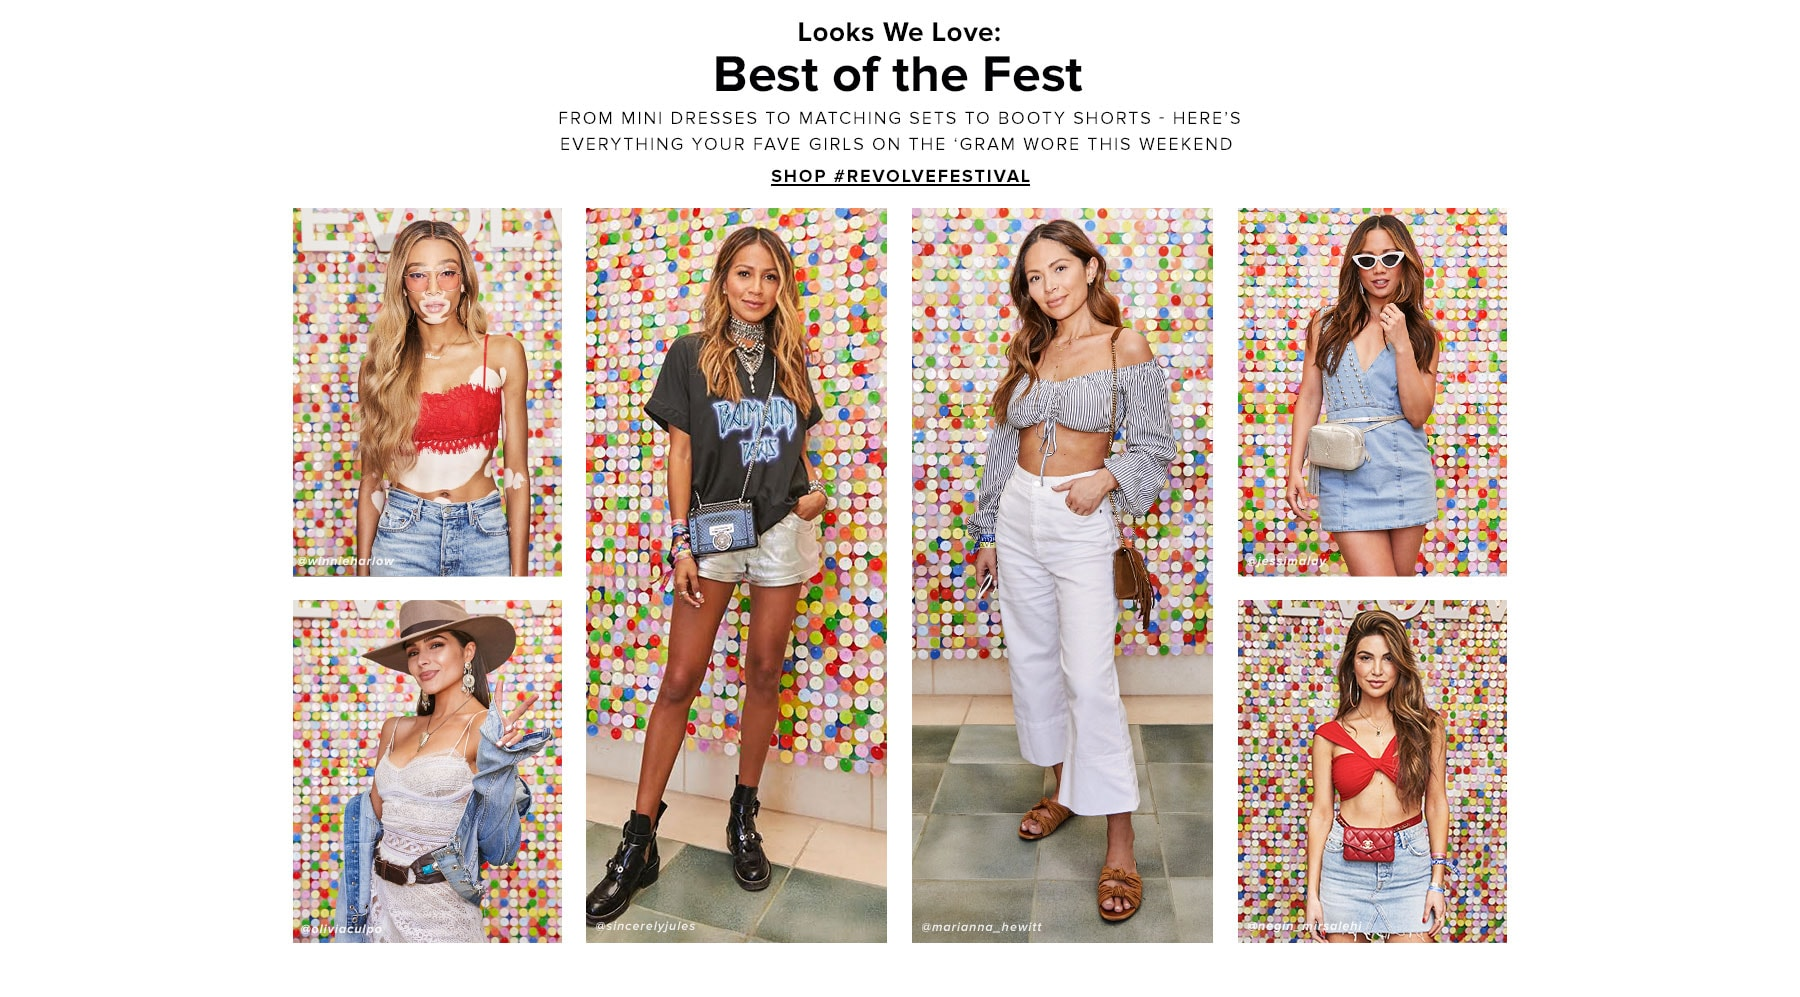 Looks We Love: Best of the Fest. From mini dresses to matching sets to booty shorts - here's everything your fave girls on the 'gram wore this weekend. Shop REVOLVEfestival.